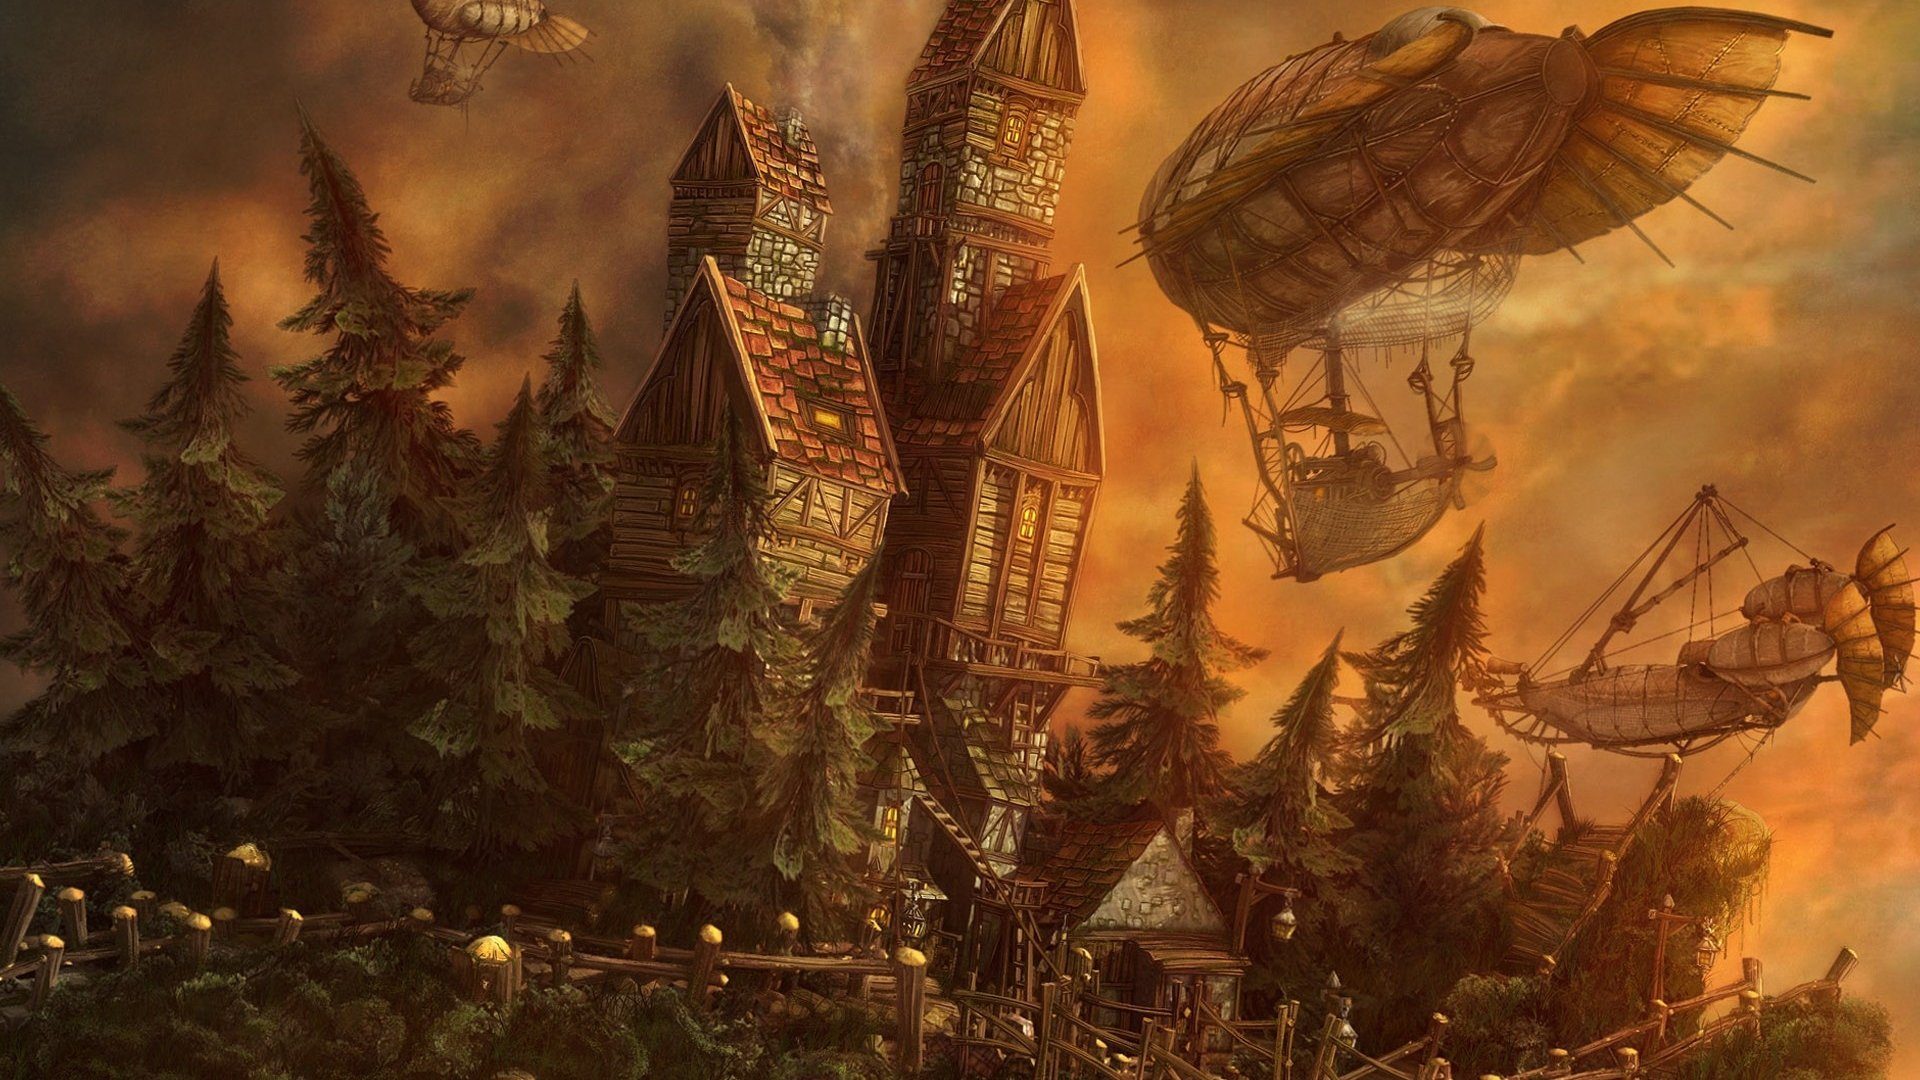 325 Steampunk Hd Wallpapers Background Images Wallpaper Abyss Page 7